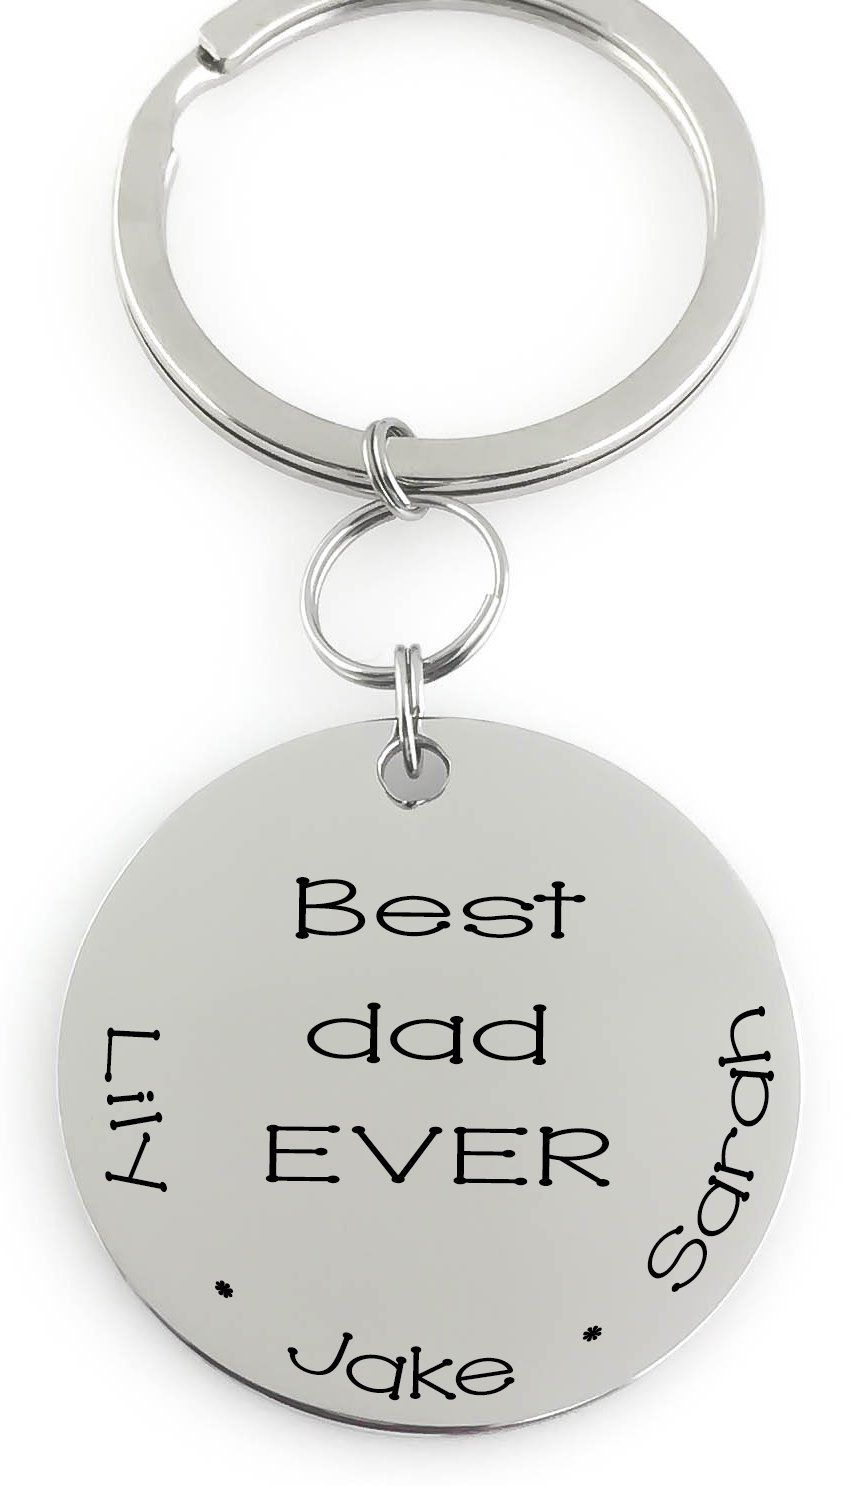 Piercing jewelry names  Key Chain  best dad Ever  Kids Names Perfect Gift for Dad